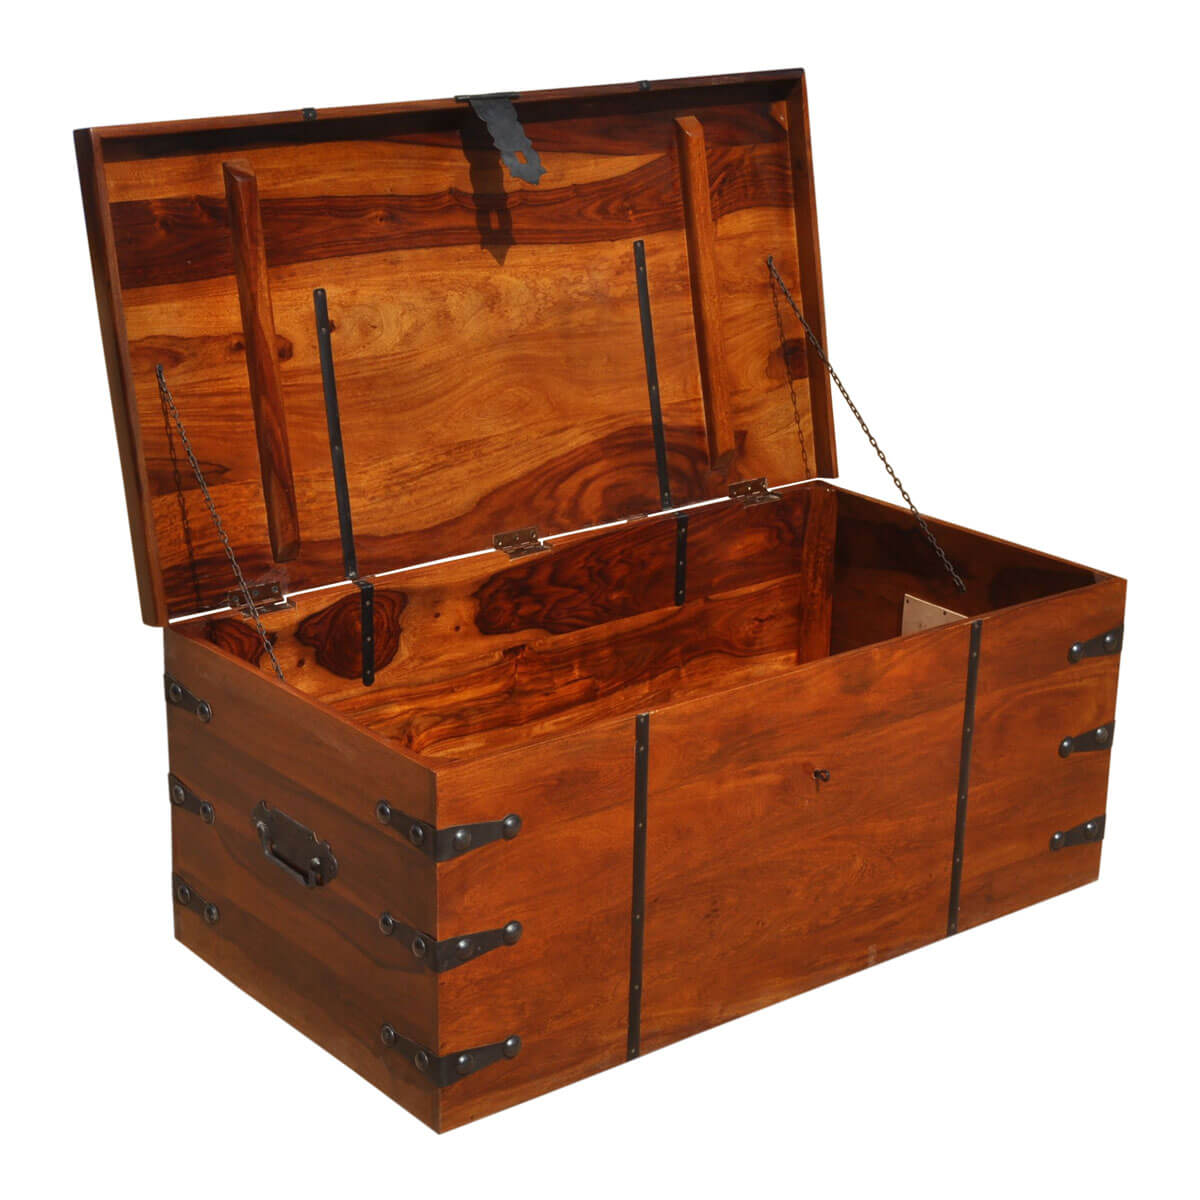 Extra Large Storage Trunk Coffee Table: Large Solid Wood With Metal Accents Storage Trunk Coffee